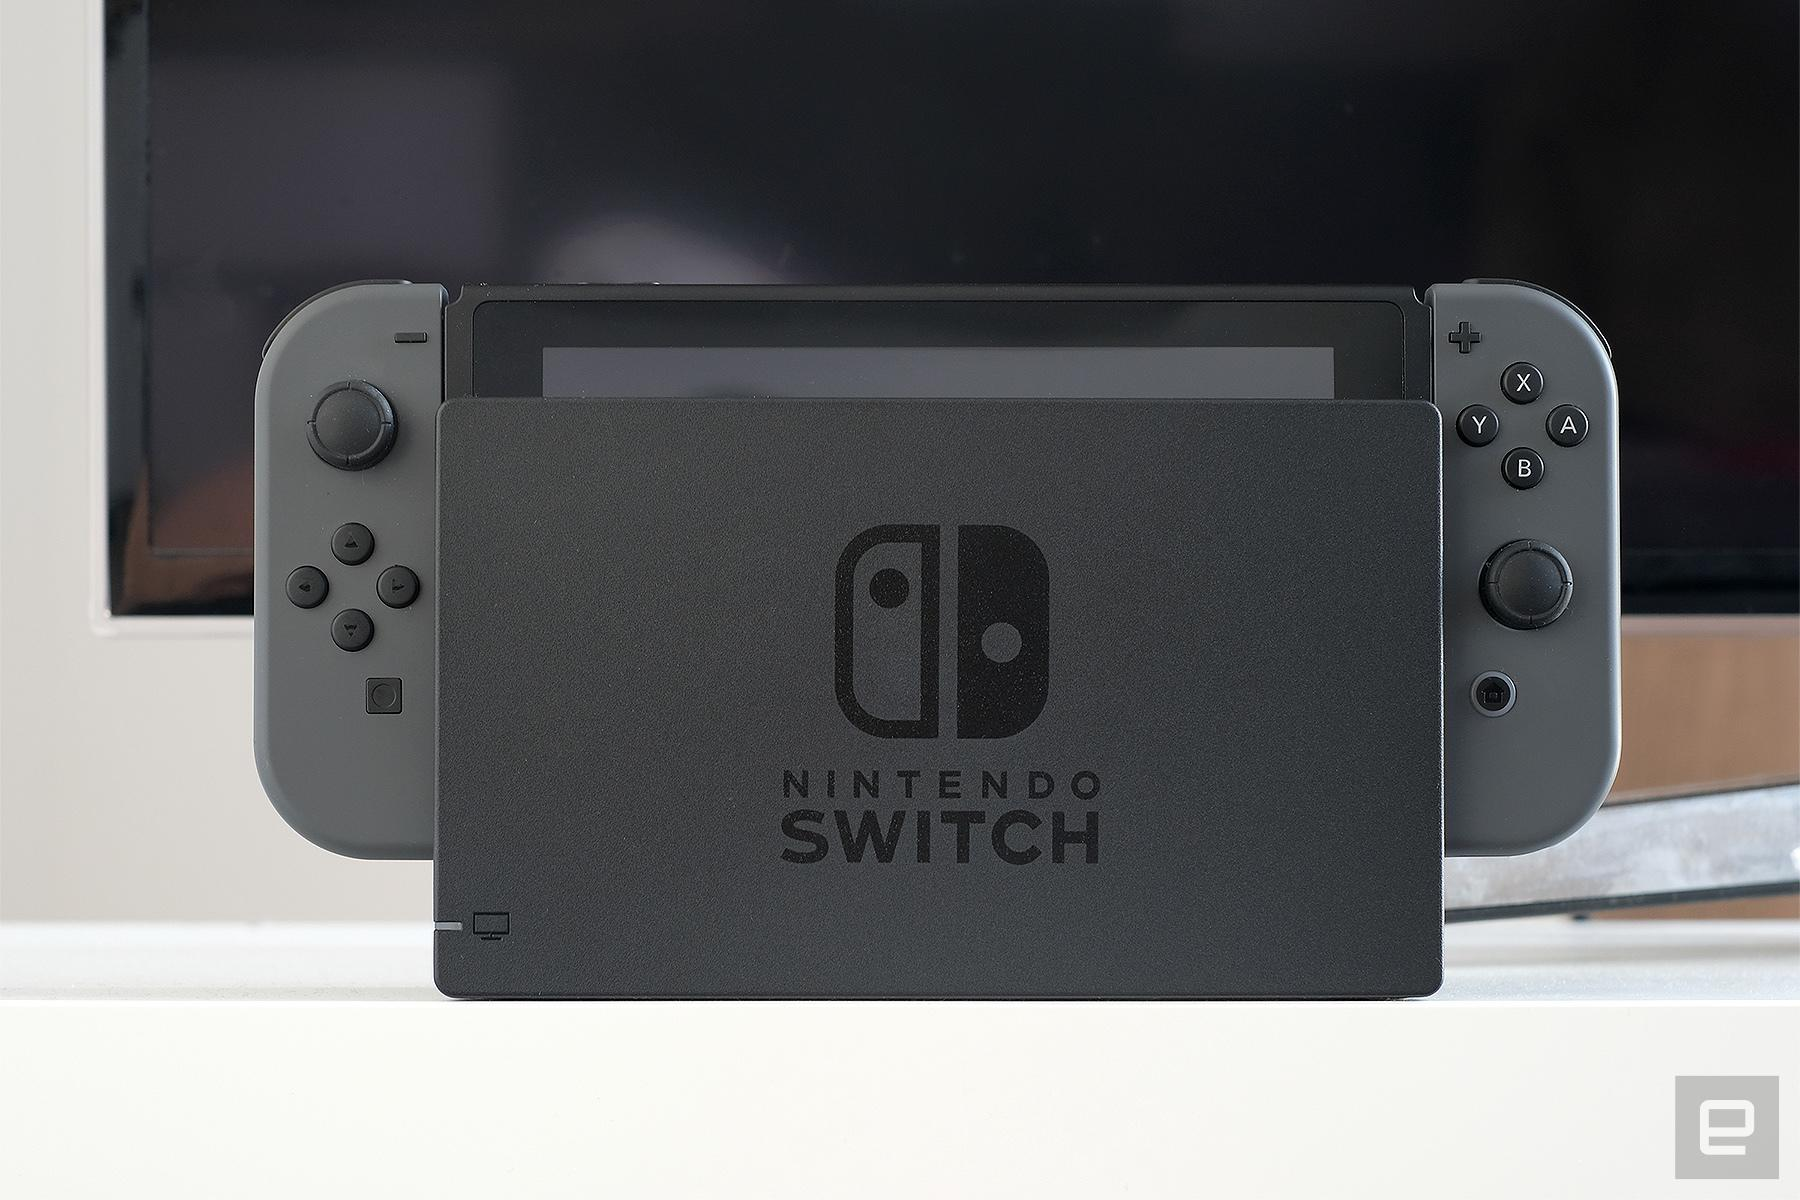 Nintendo's rumored OLED Switch may arrive in September – Engadget